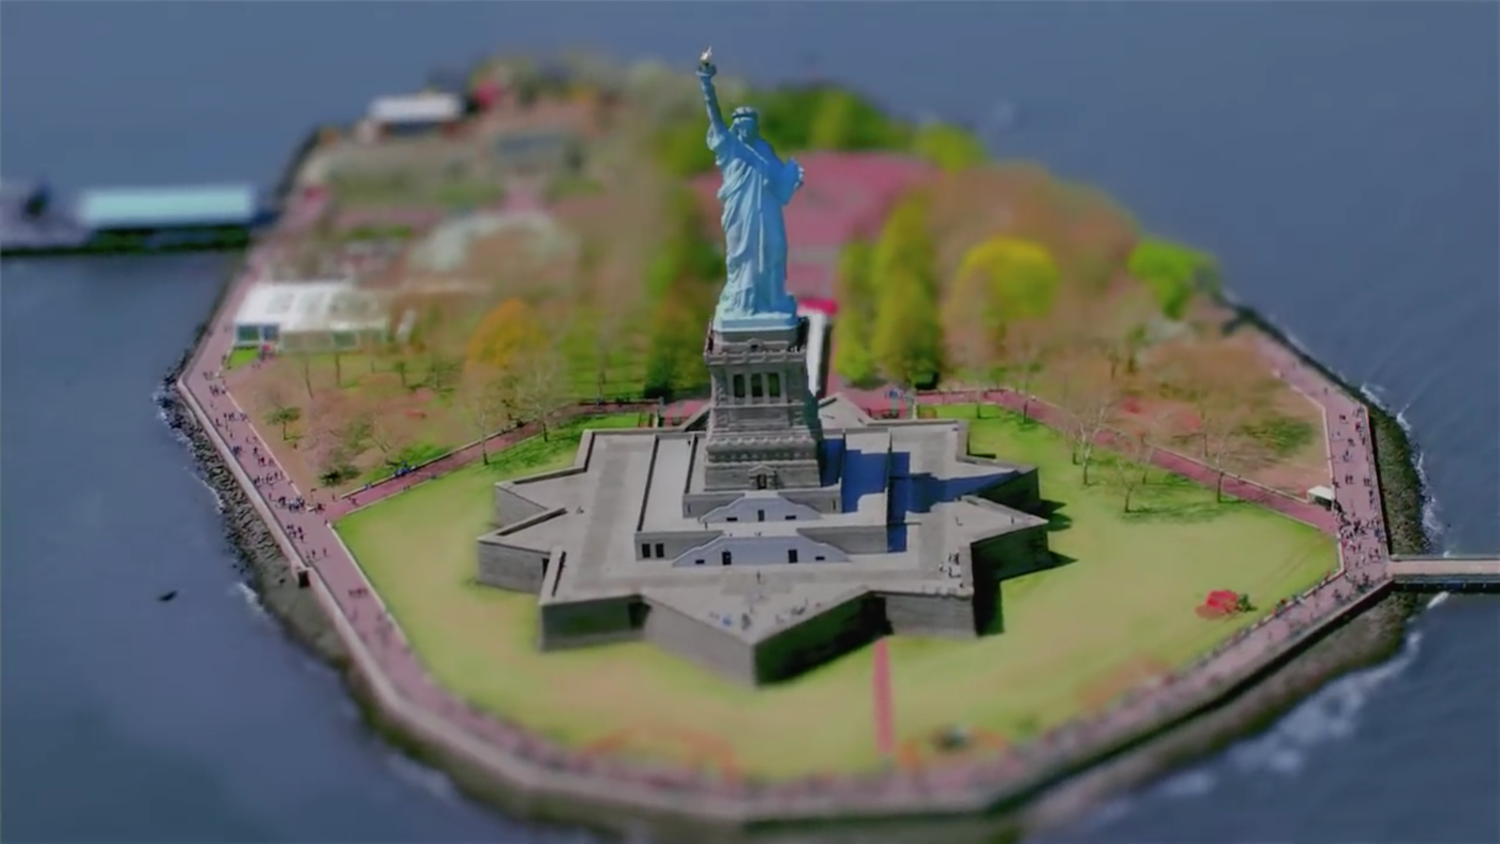 The iconic Statue of Liberty makes an appearance 15 seconds into the video. Access to the statue was reopened in 2009 following a 2001 closure due to the September 11 attacks. Gustave Eiffel's statue was gifted to the United States from the people of France in 1886 and has remained a major tourist attraction.